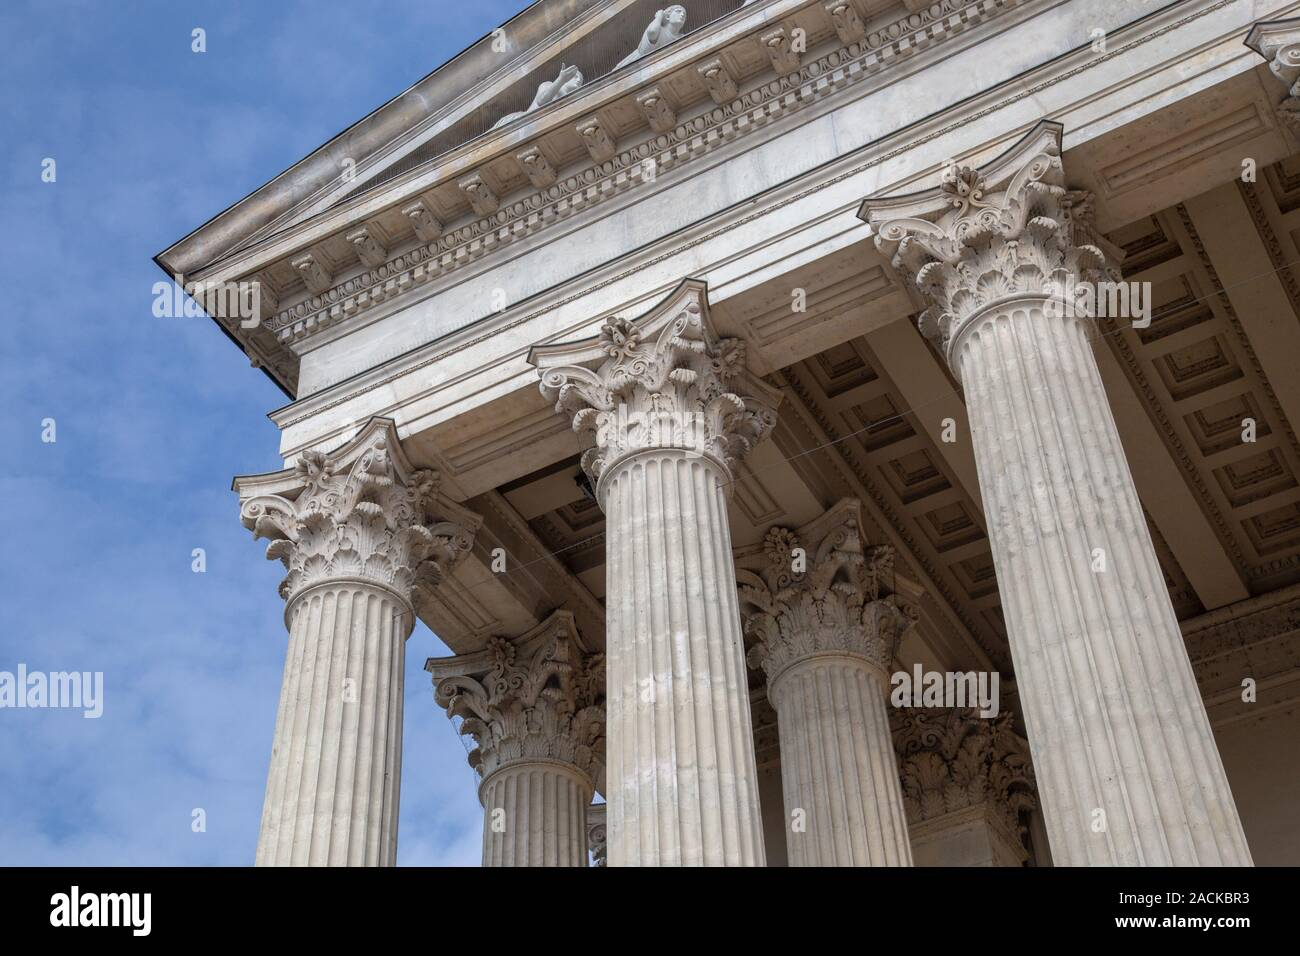 Vintage Old Justice Courthouse Column. Neoclassical colonnade with corinthian columns as part of a public building resembling a Greek or Roman temple. Stock Photo